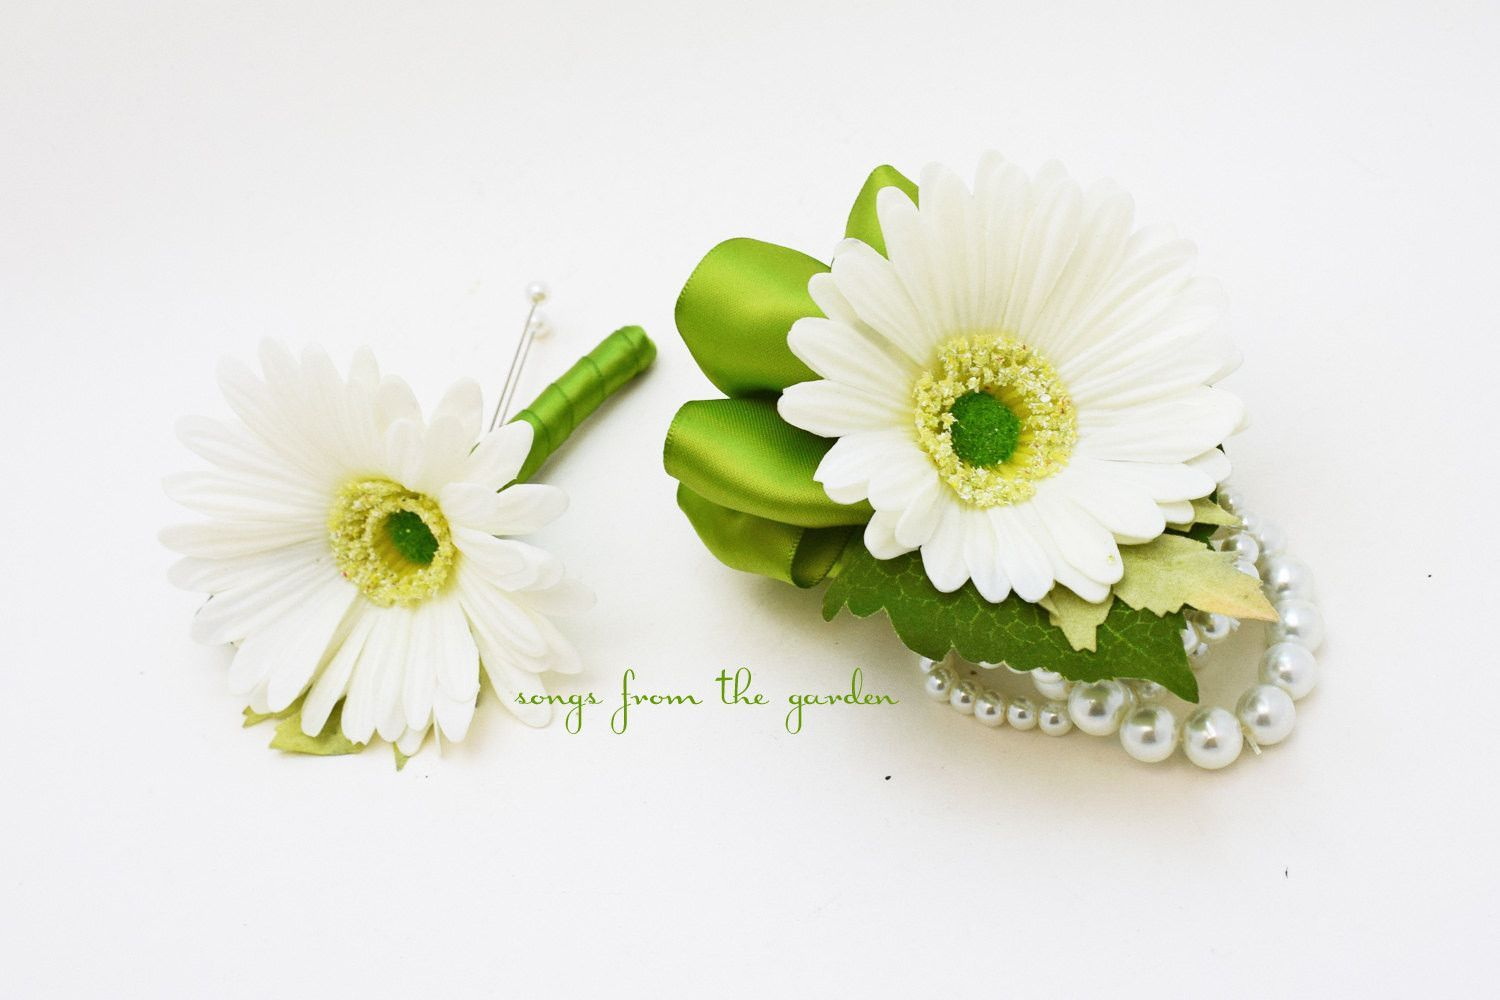 Gerber Daisy Boutonniere Corsage Wedding Flower Package with Rustic Wedding Boutonniere and Corsage